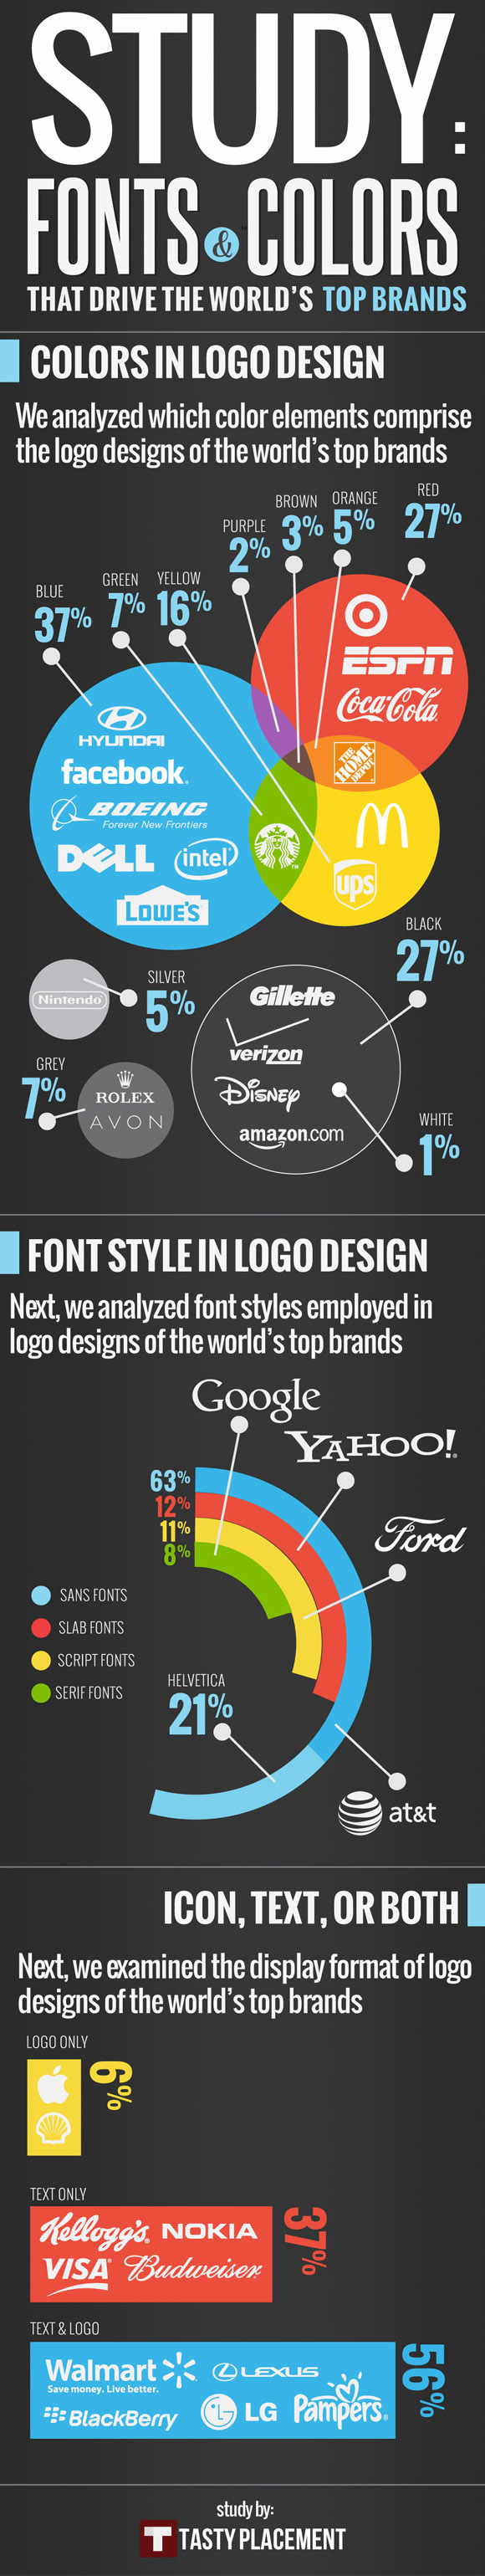 font color logo Font and Color in Logo Design [Infographic]